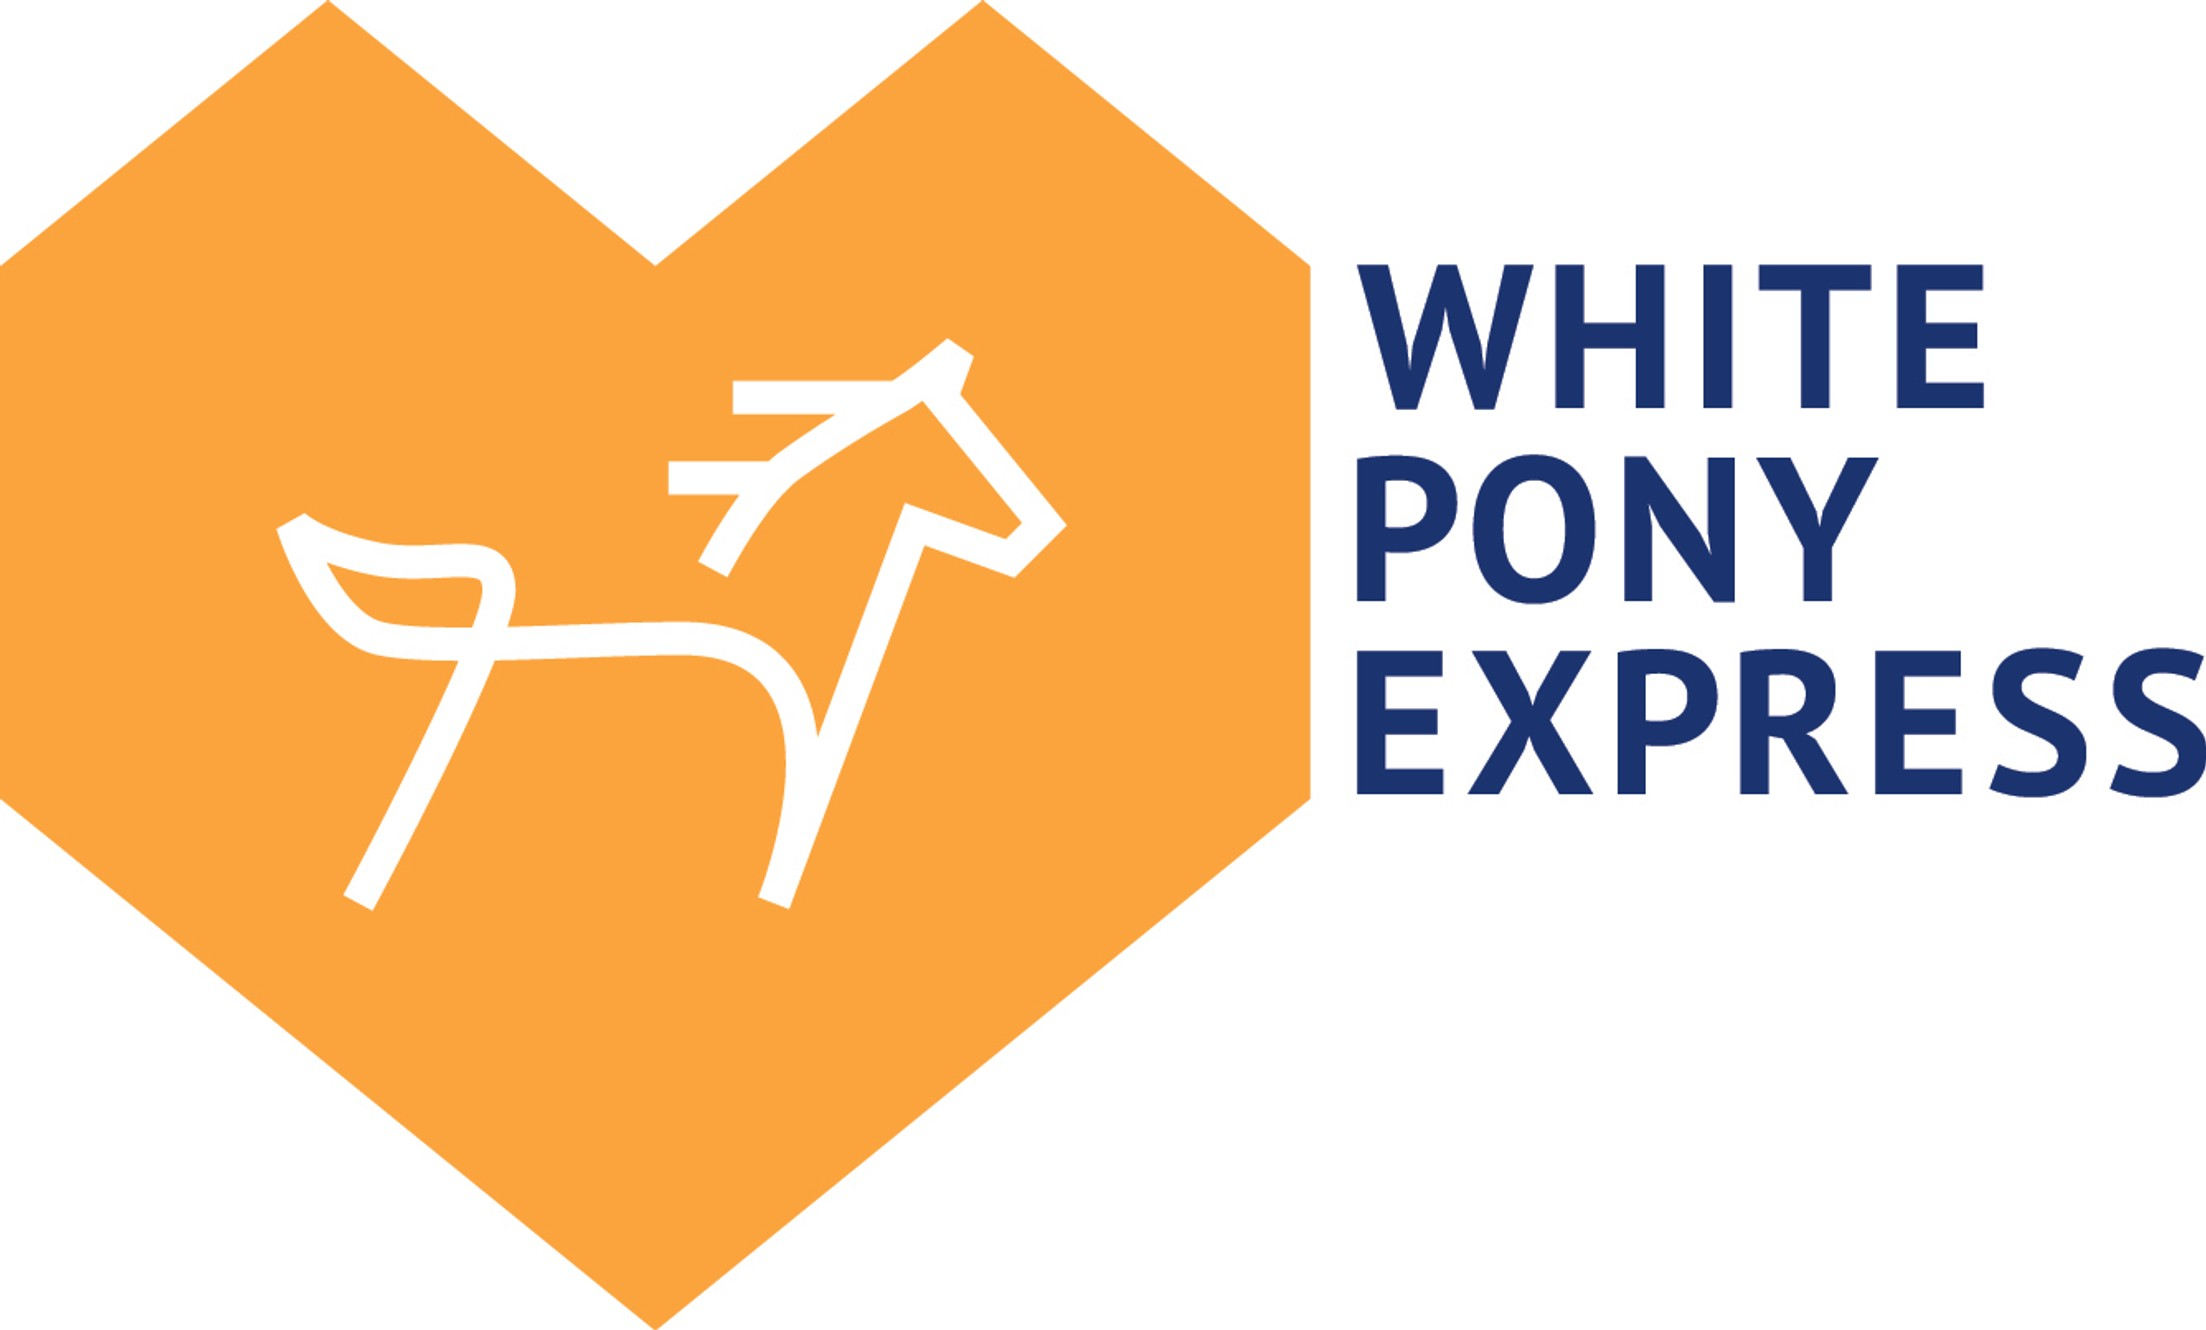 White Pony Express